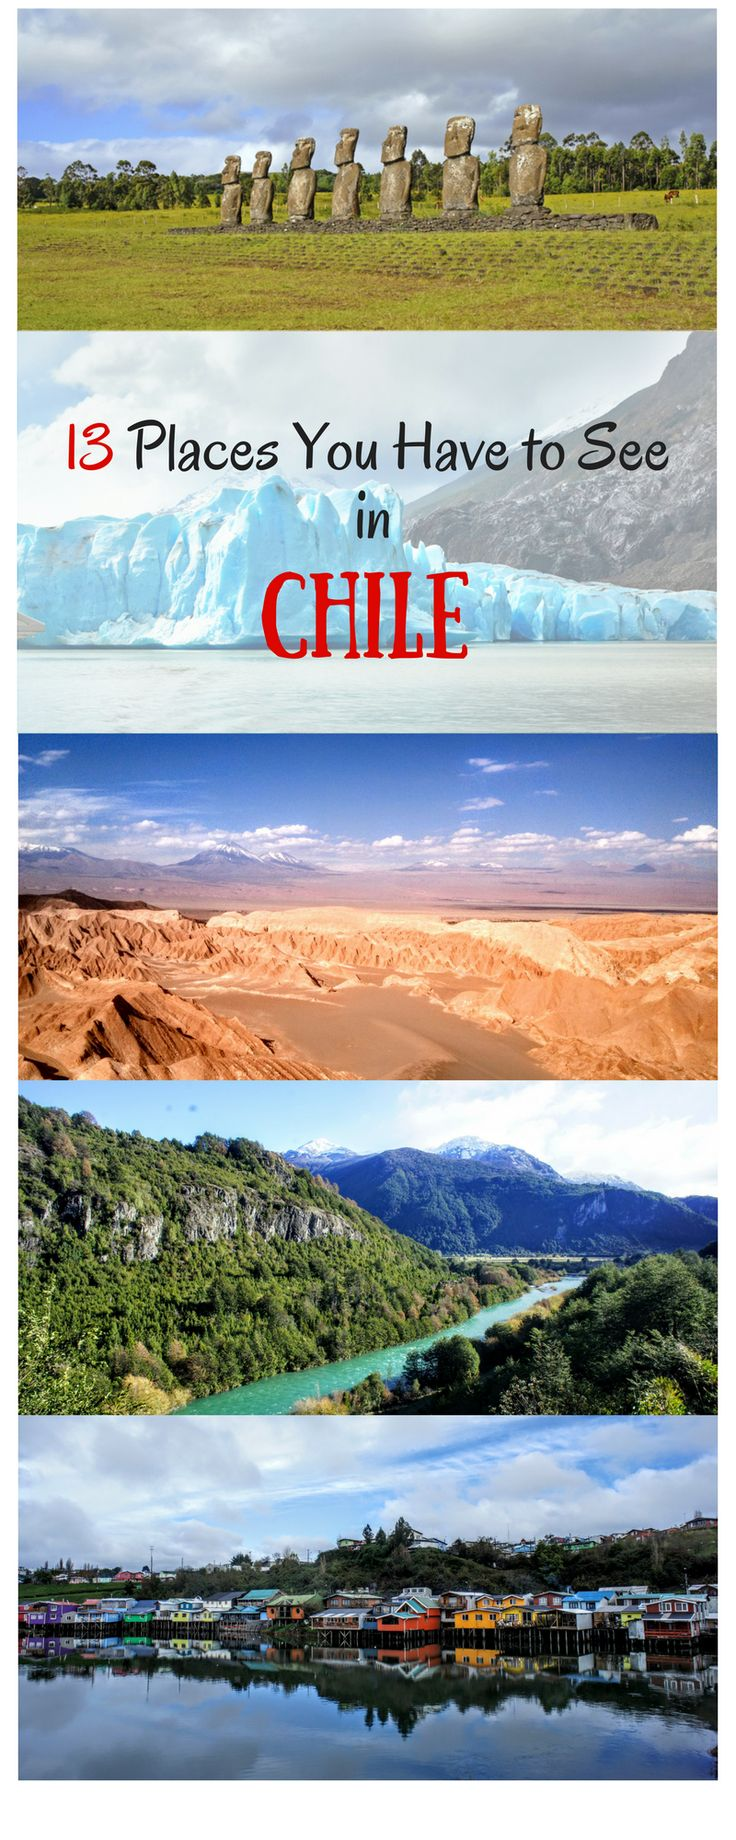 If you are planning to travel through Chile there are some places you definitely need to see. I created a list for you with places you have to see in Chile, like for instance Torres del Paine, Valparaiso, Pucon or Valdivia. I hope you enjoy your trip to Chile….. Thank you for repinning #chile #travel #backpacking #torresdelpaine #valparaiso #santiago